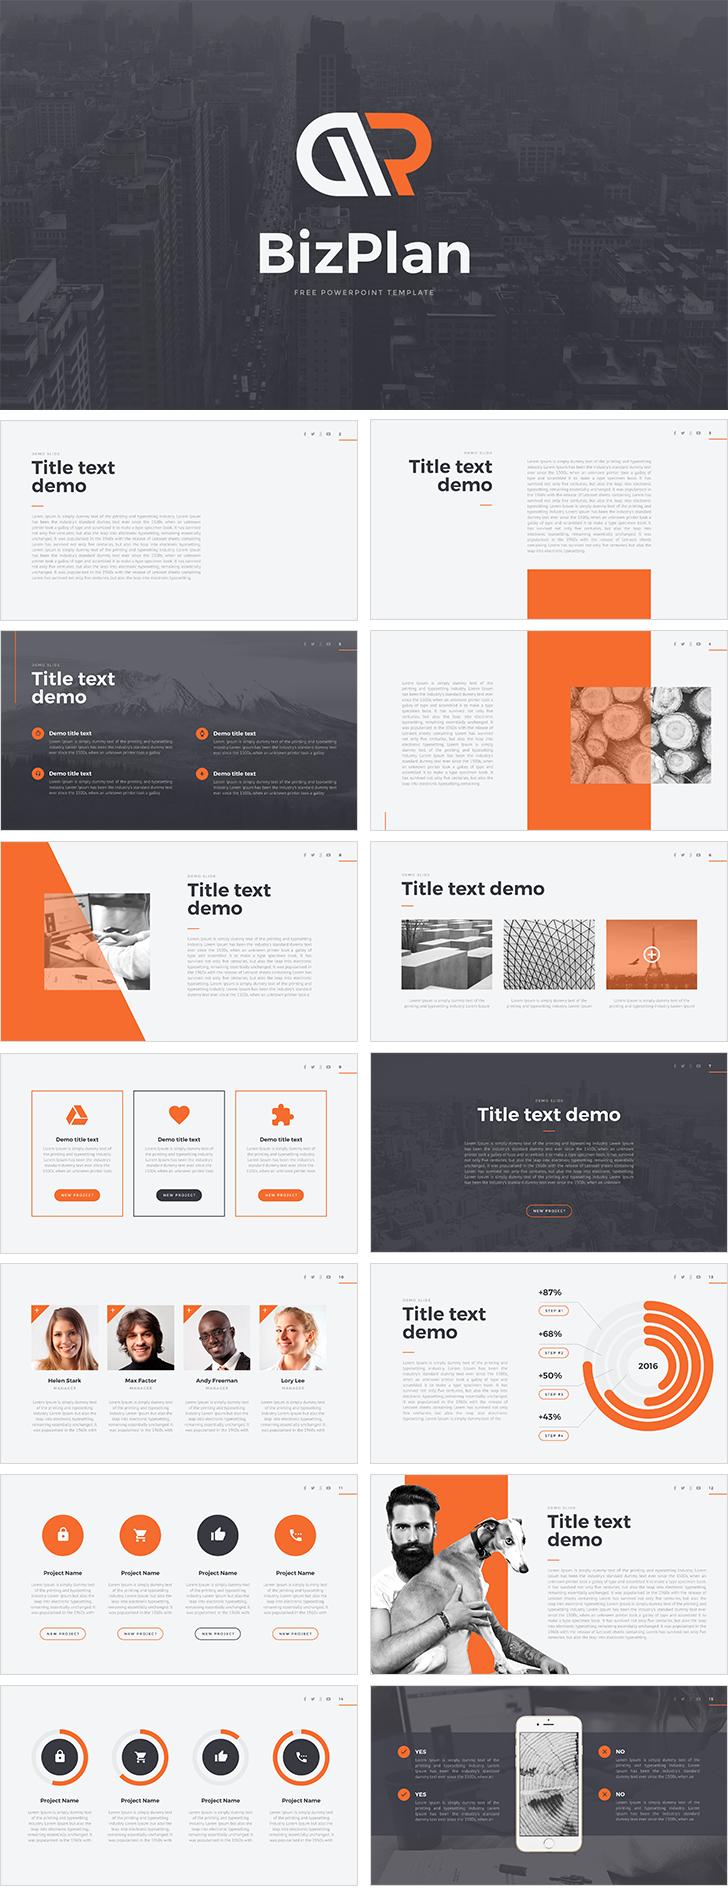 Bizplan free powerpoint template download free bizplan free powerpoint template toneelgroepblik Gallery